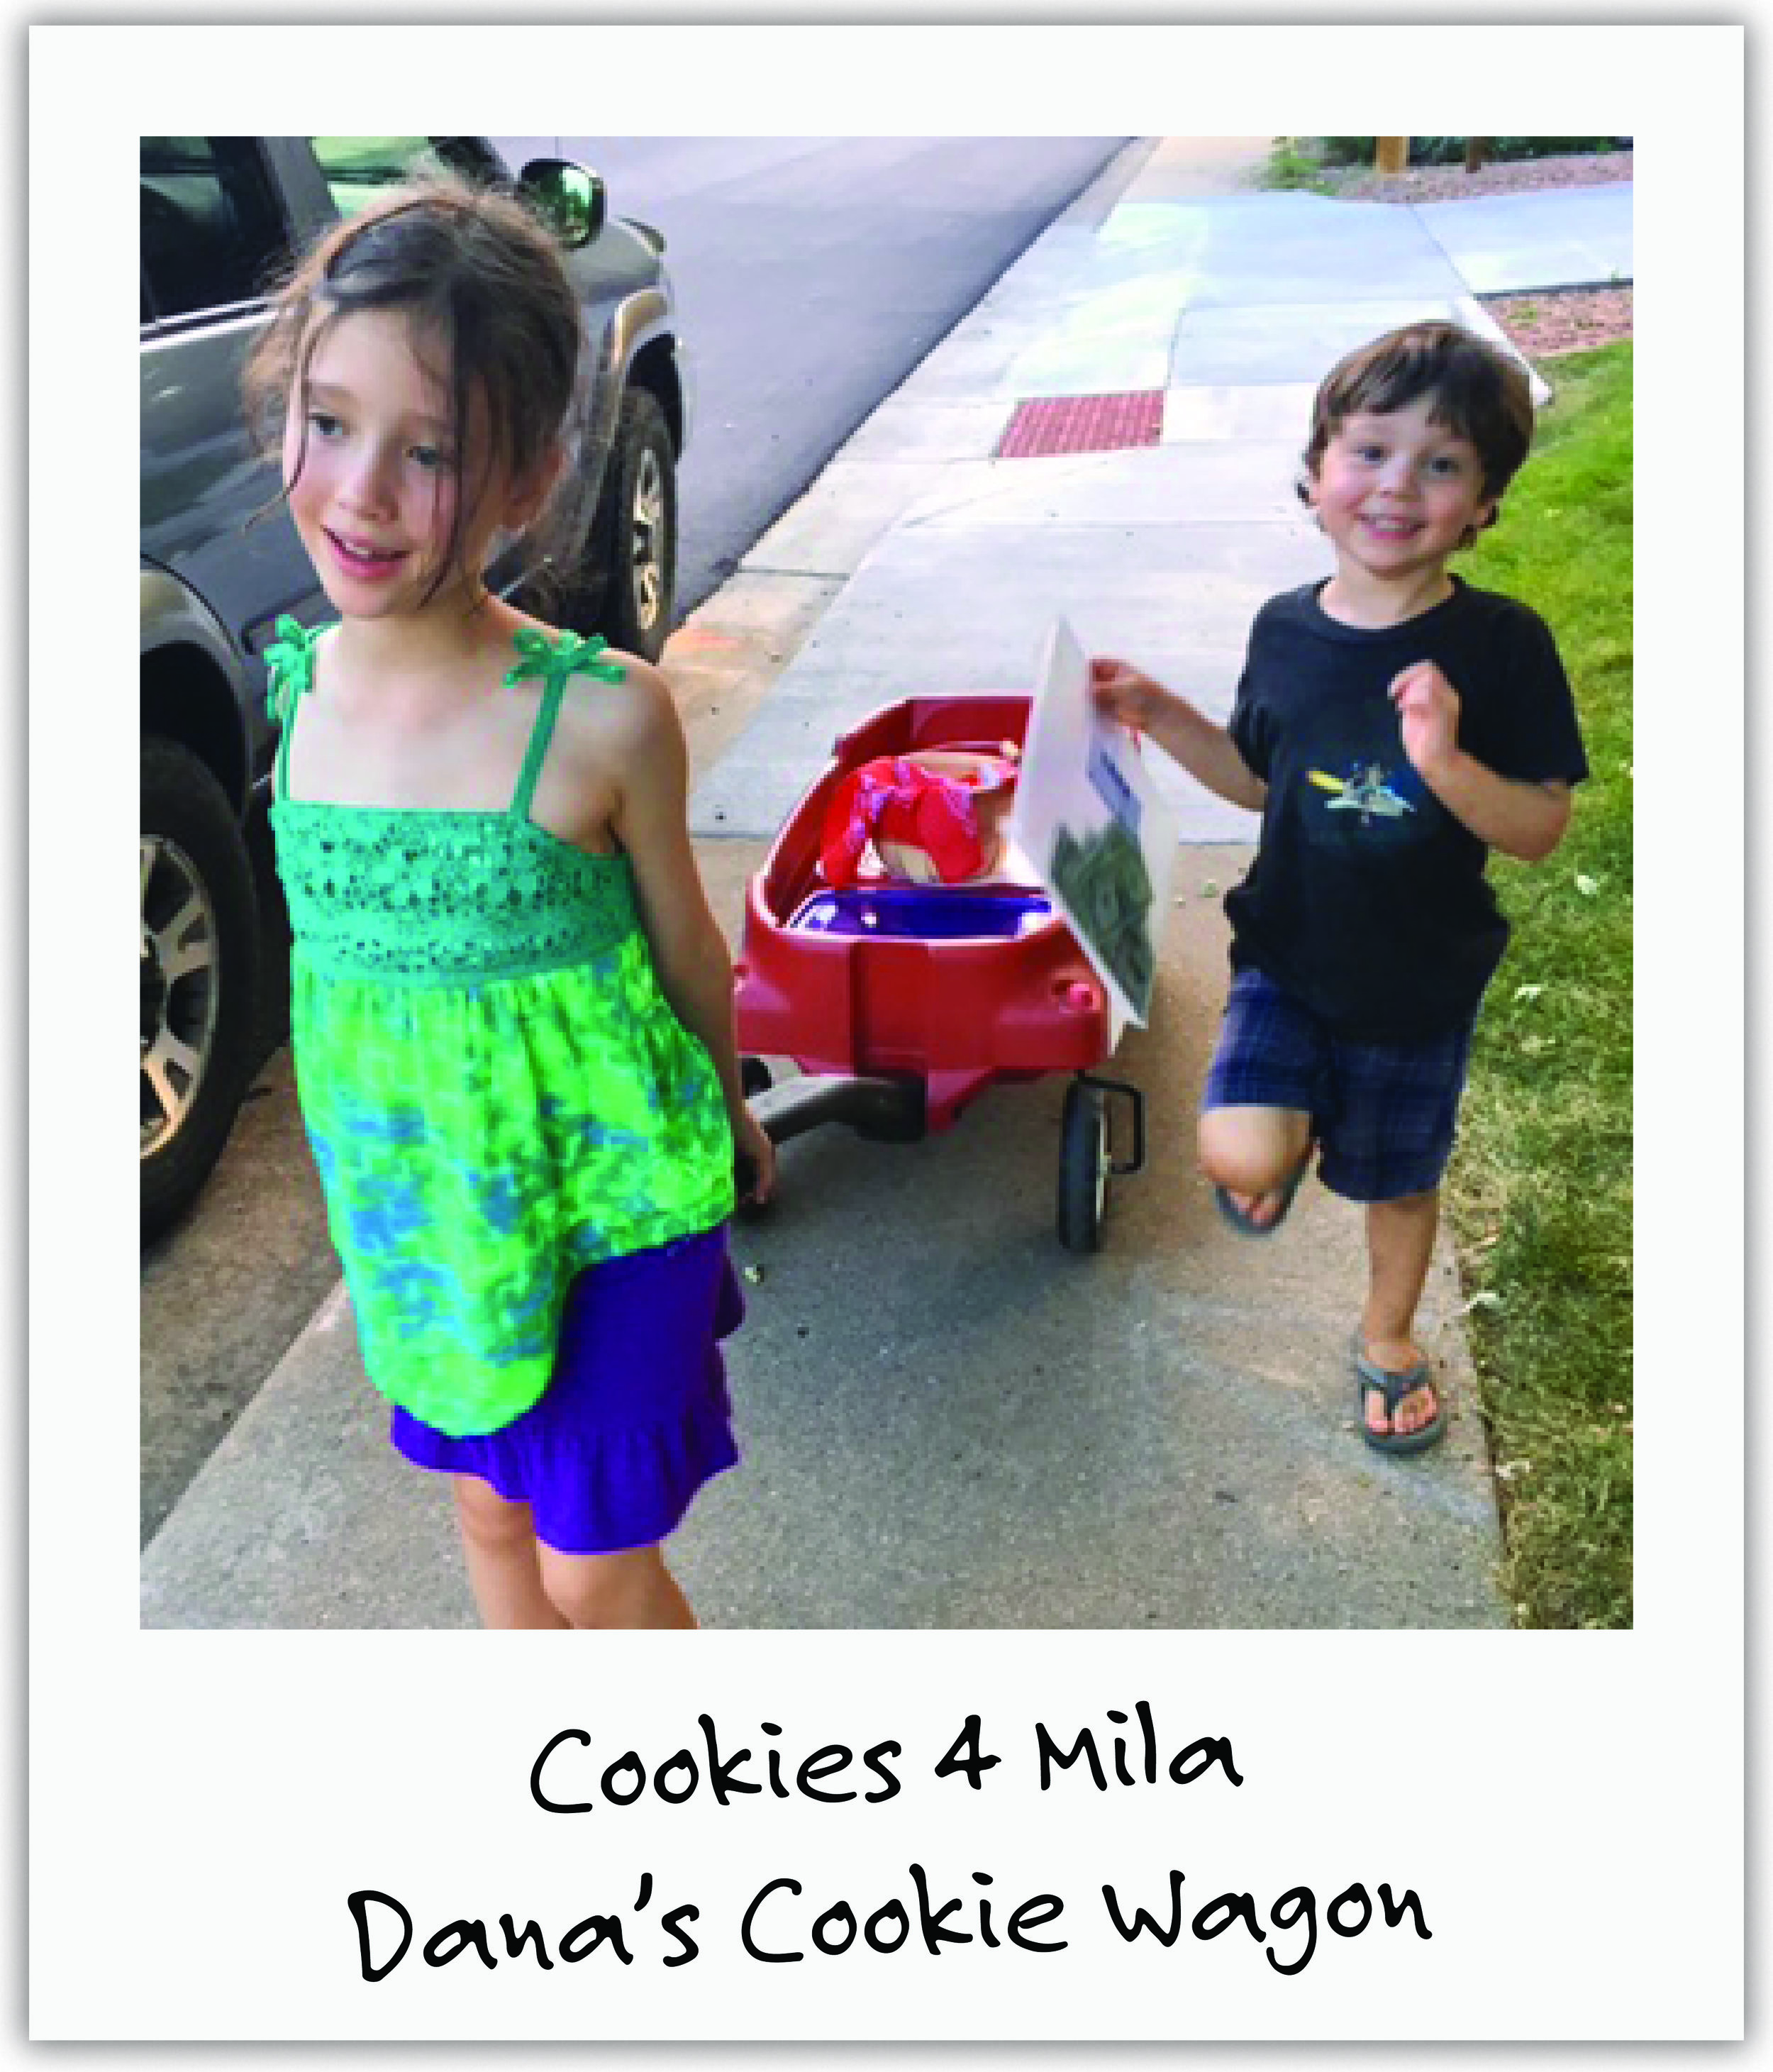 Mila's old friend from stuttering therapy, Dana & her brother Carson, baked cookies every week and dragged their wagon door-to-door for months. They turned their first $1K into a GoFundMe campaign for Mila which raised over $50K in just one month!